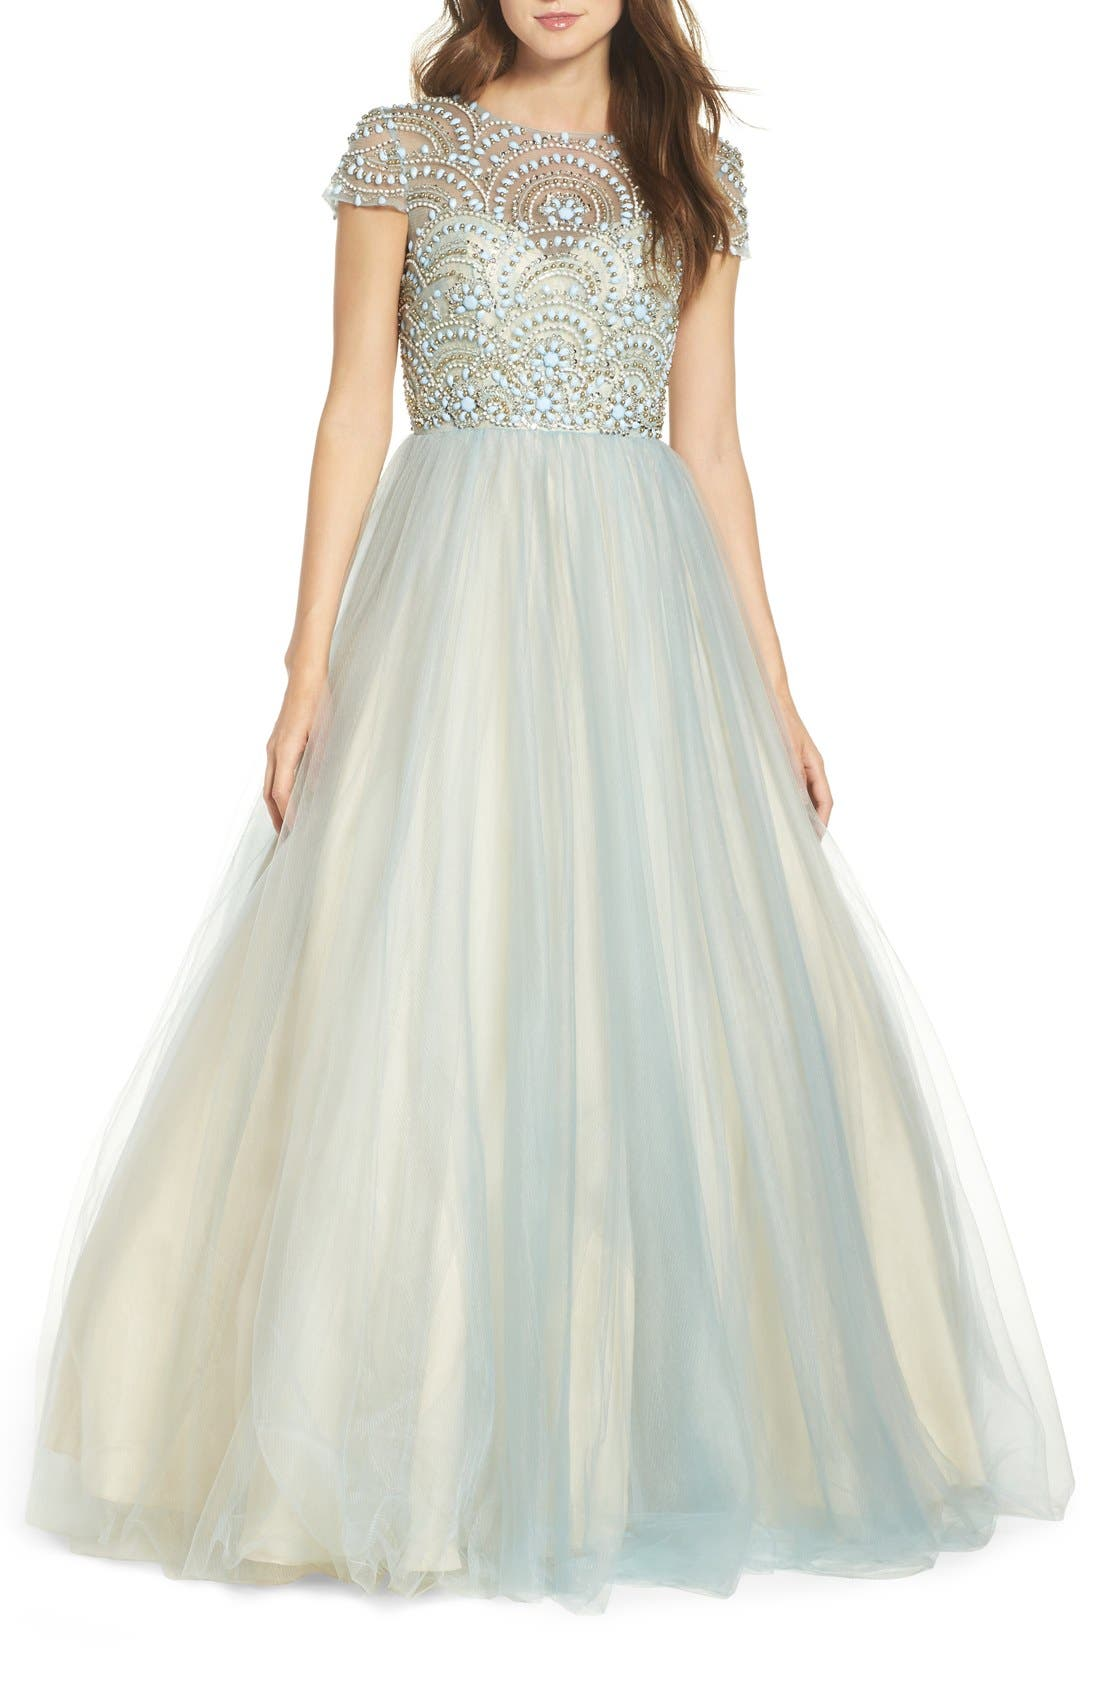 Alternate Image 1 Selected - Mac Duggal Beaded Bodice Tulle Ballgown